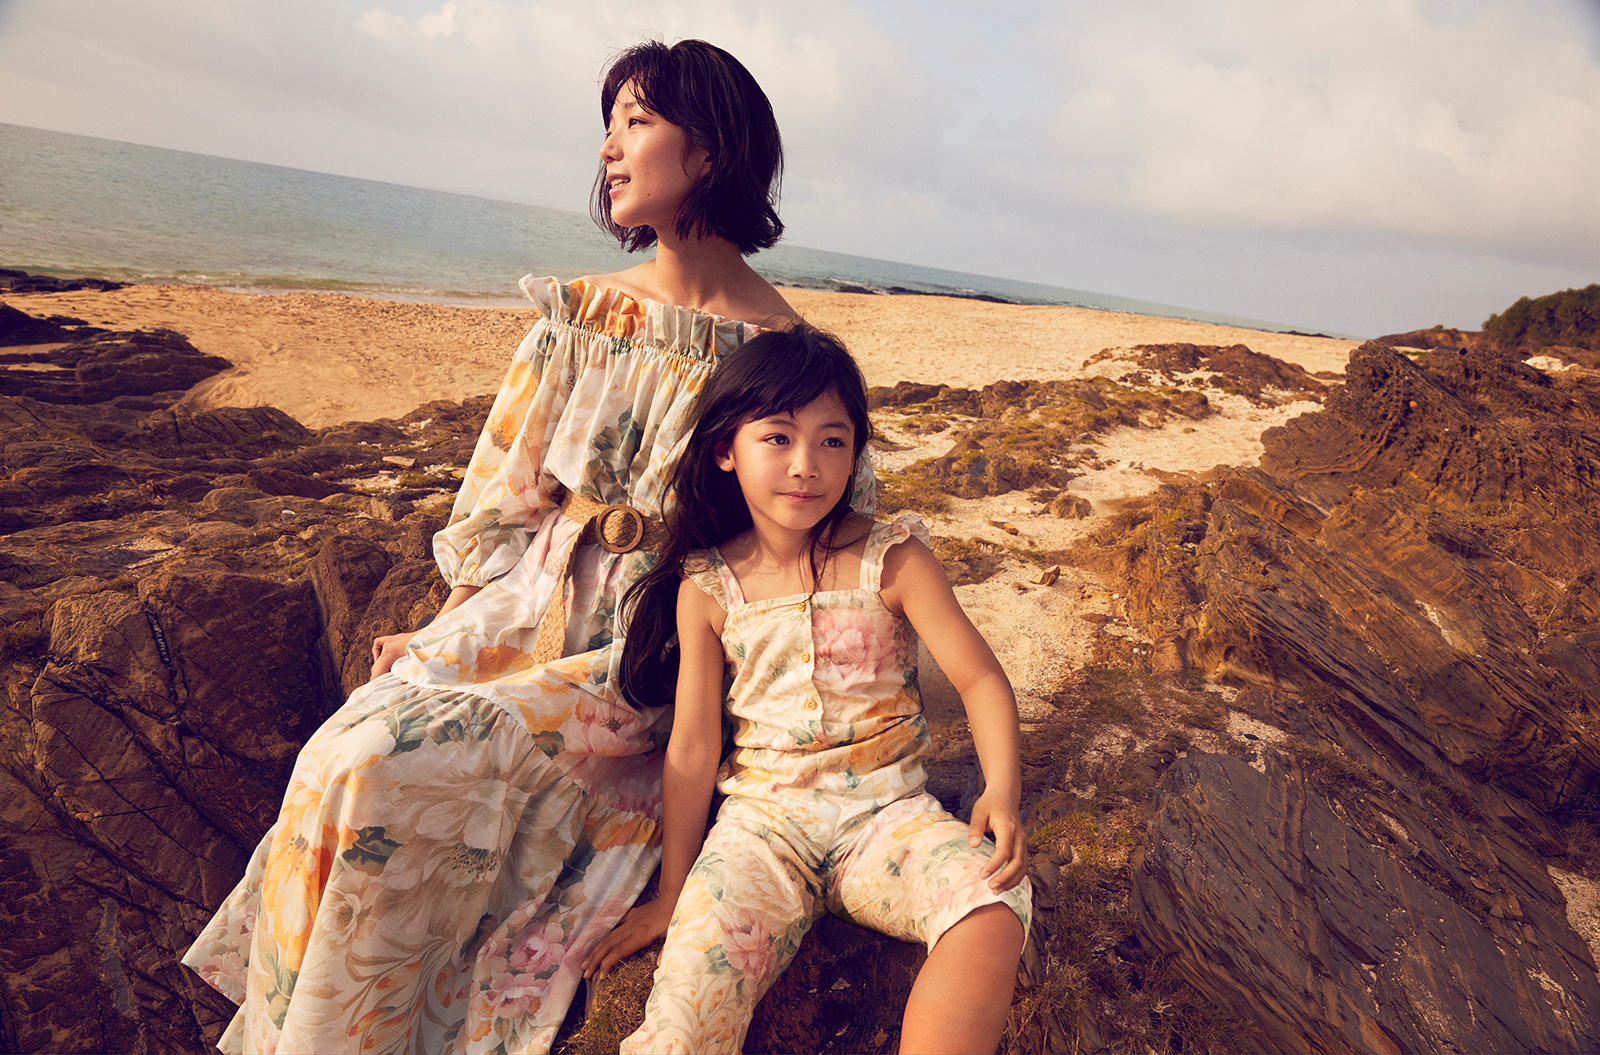 「H&M」LET'S CHANGE FASHION第3弾(提供写真)